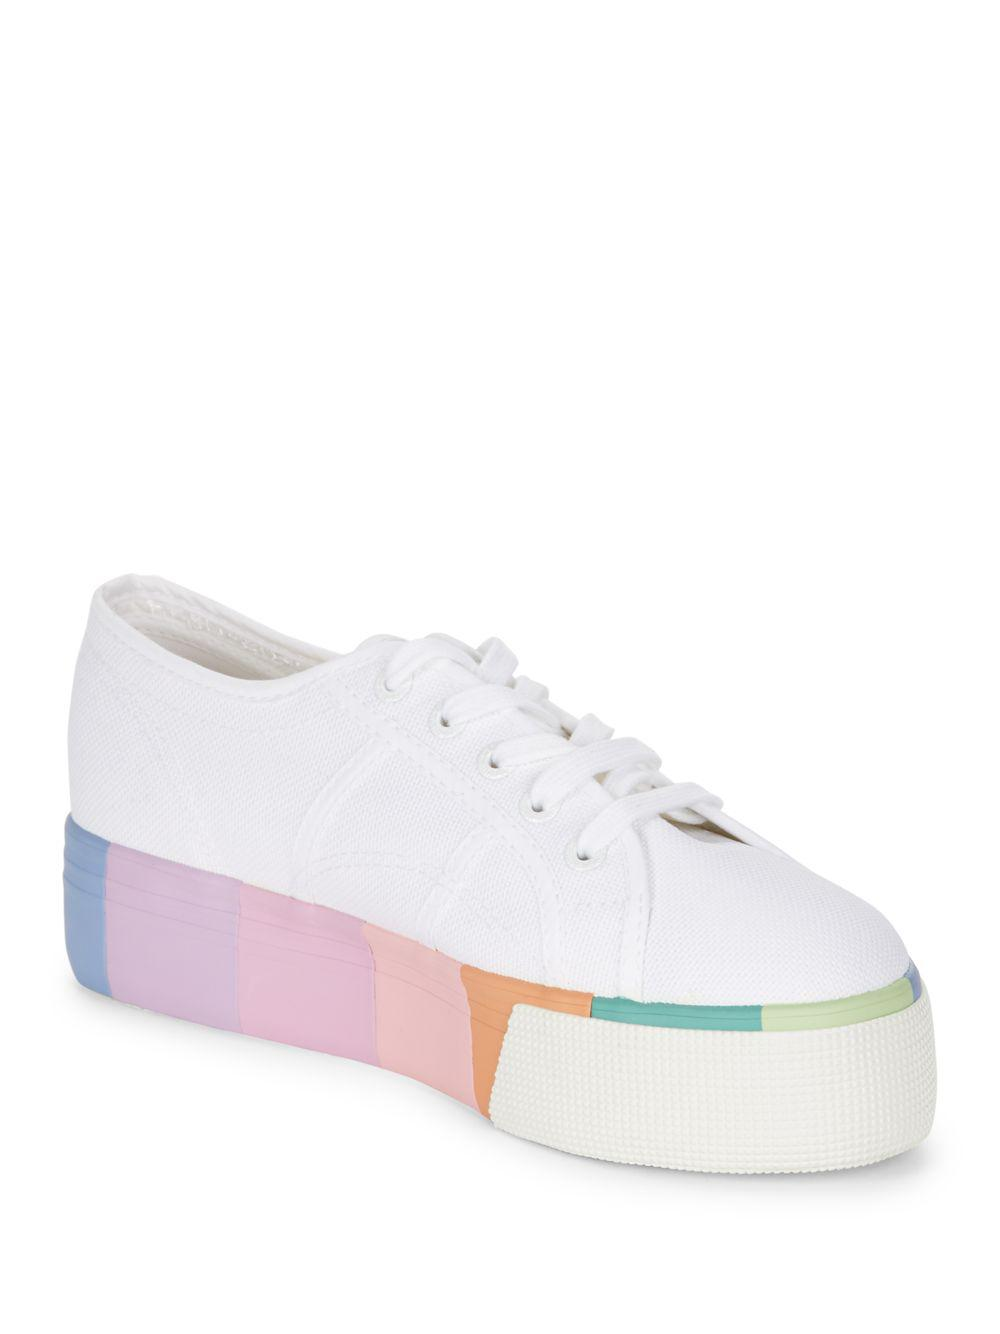 Lyst - Superga Striped Sole Platform Sneakers in White